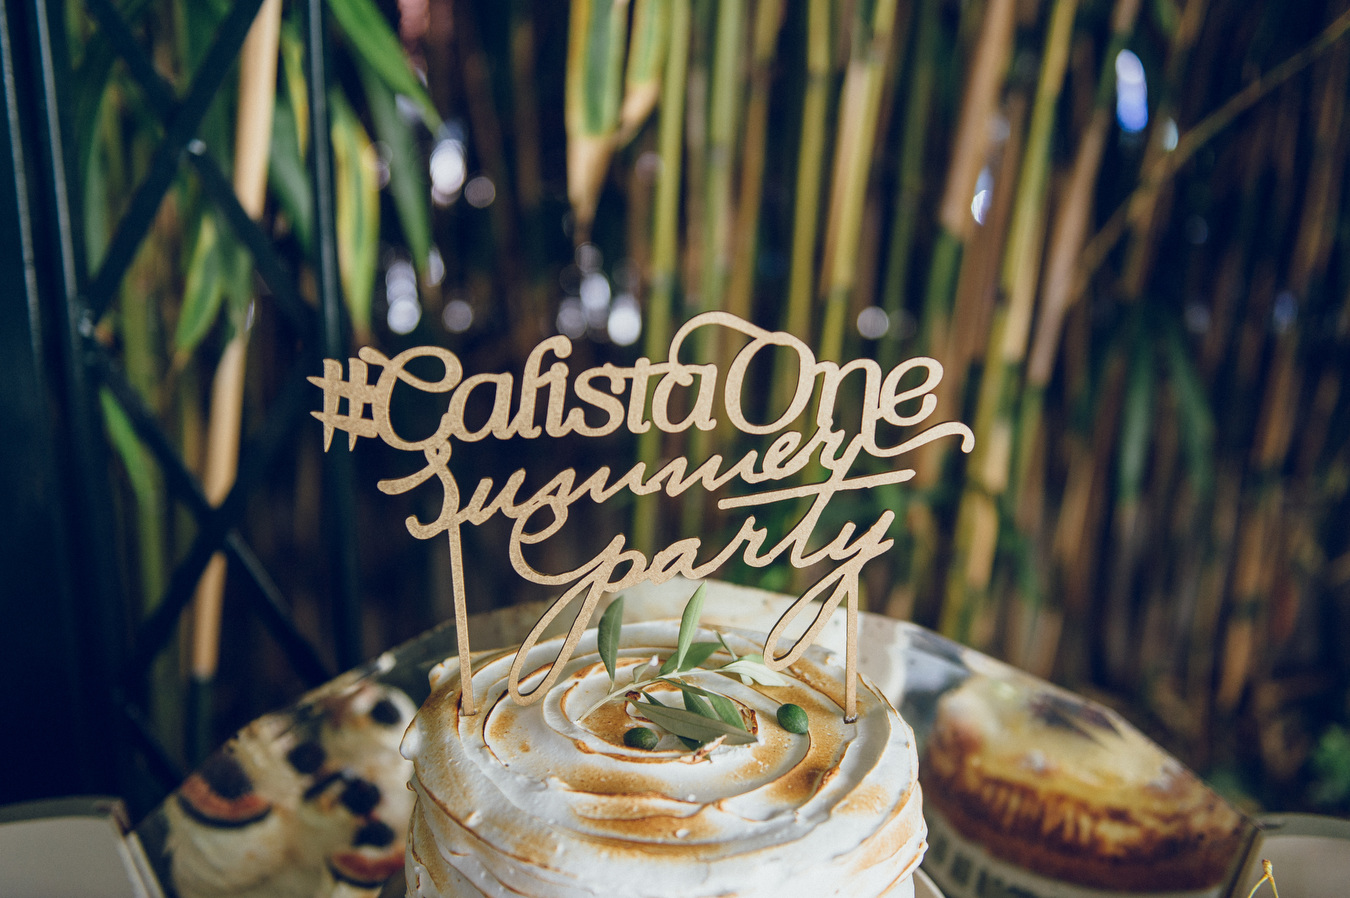 calista-one-lista-de-bodas-online-blog-de-bodas-calista-one-summer-party-2016-wedding-planner-dpleis-5